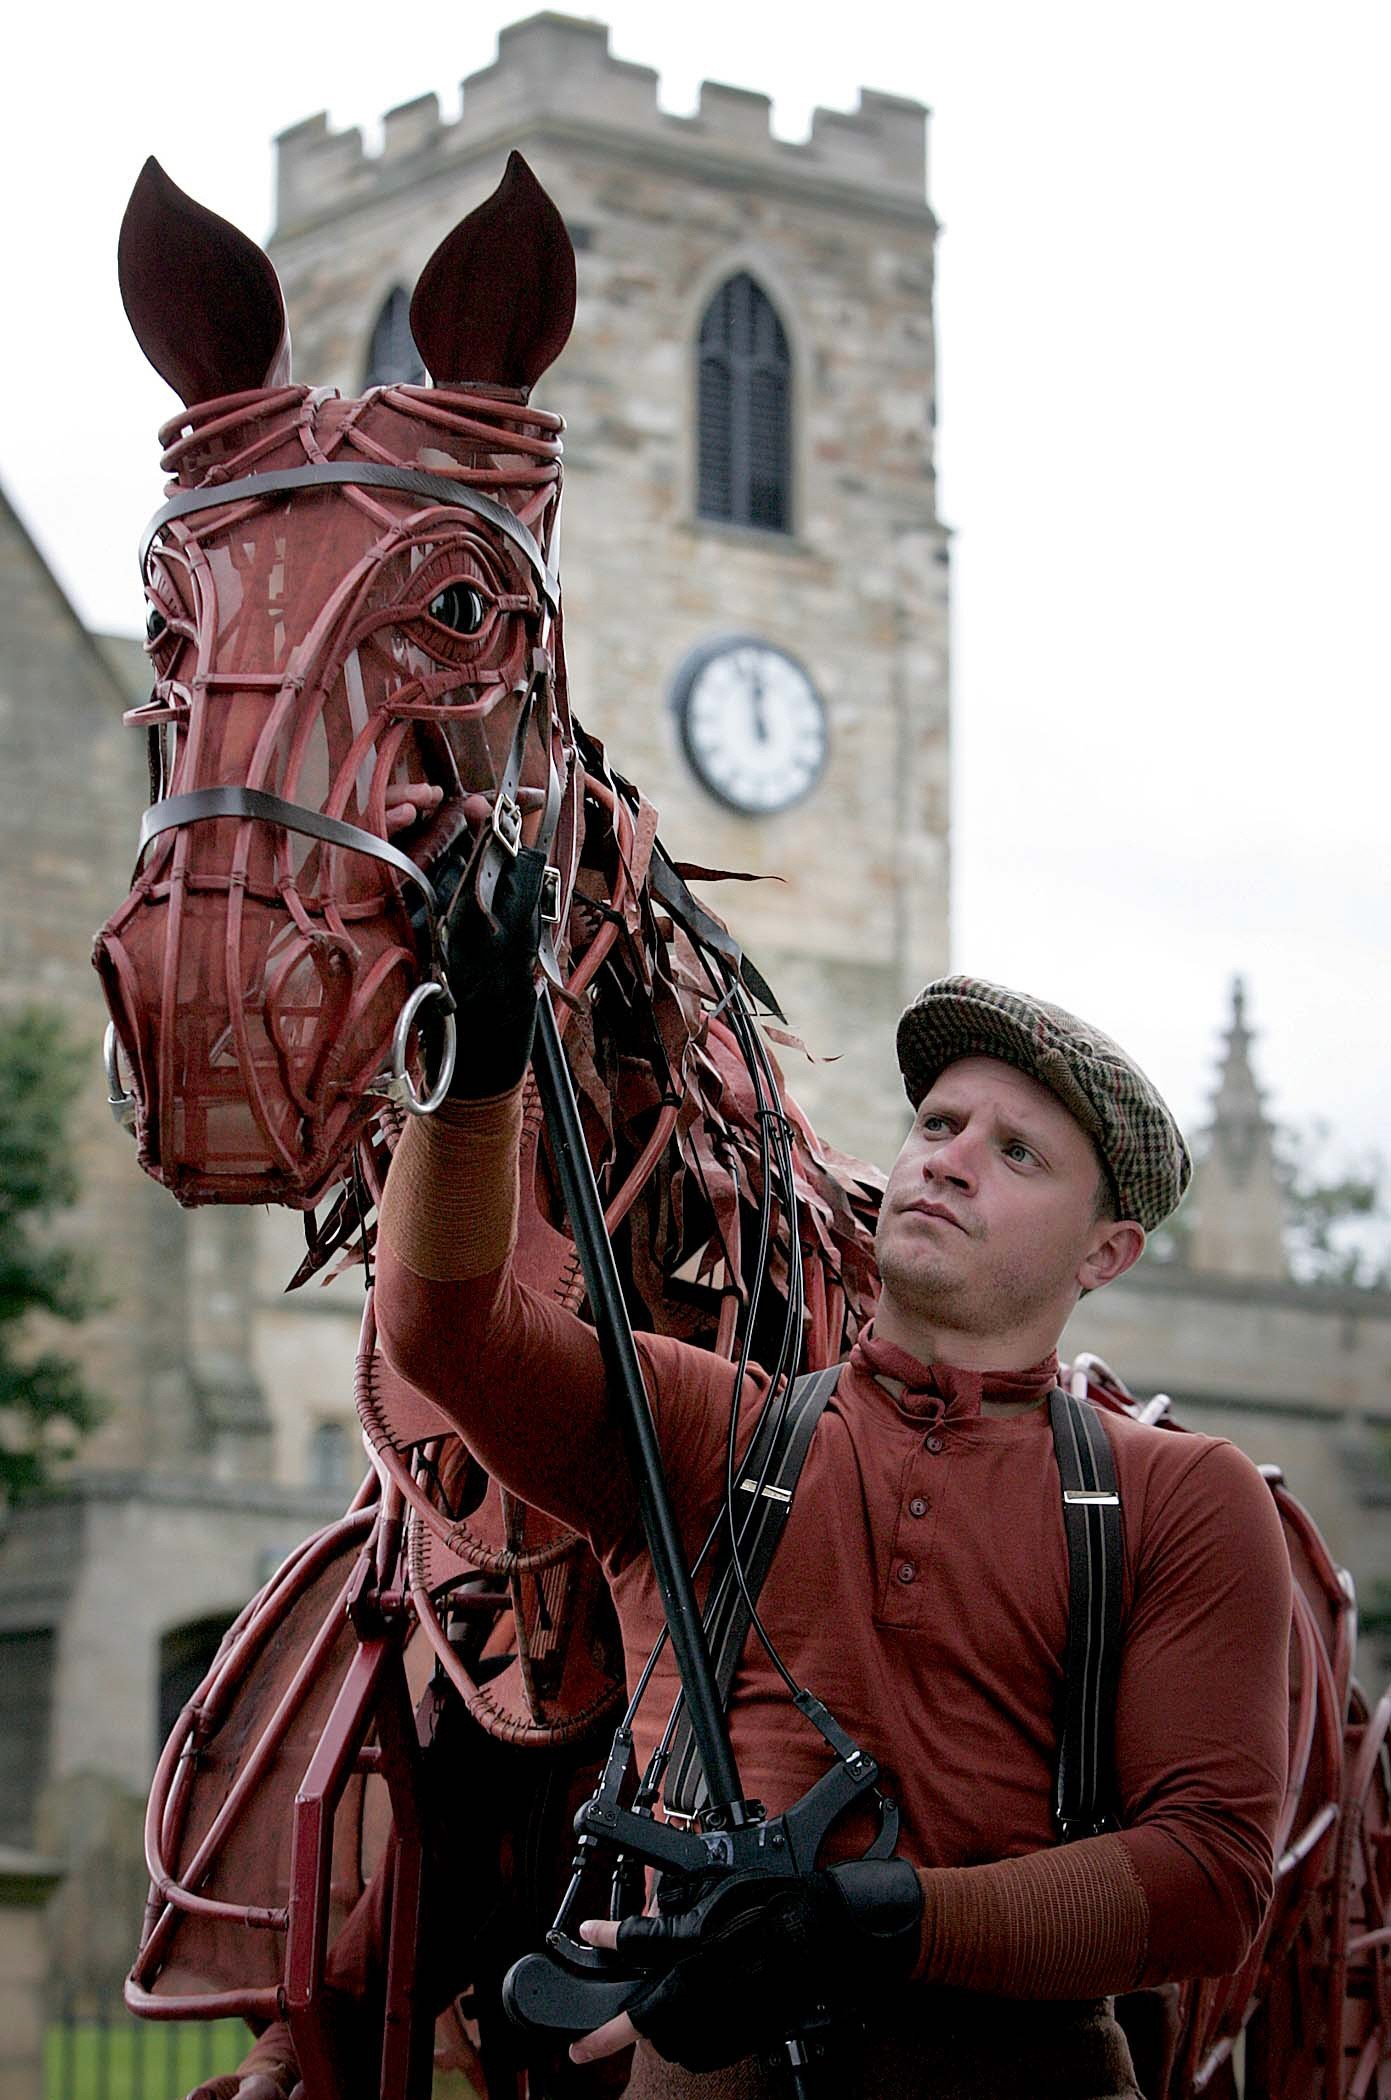 Apology and ticket offer follows War Horse disruption